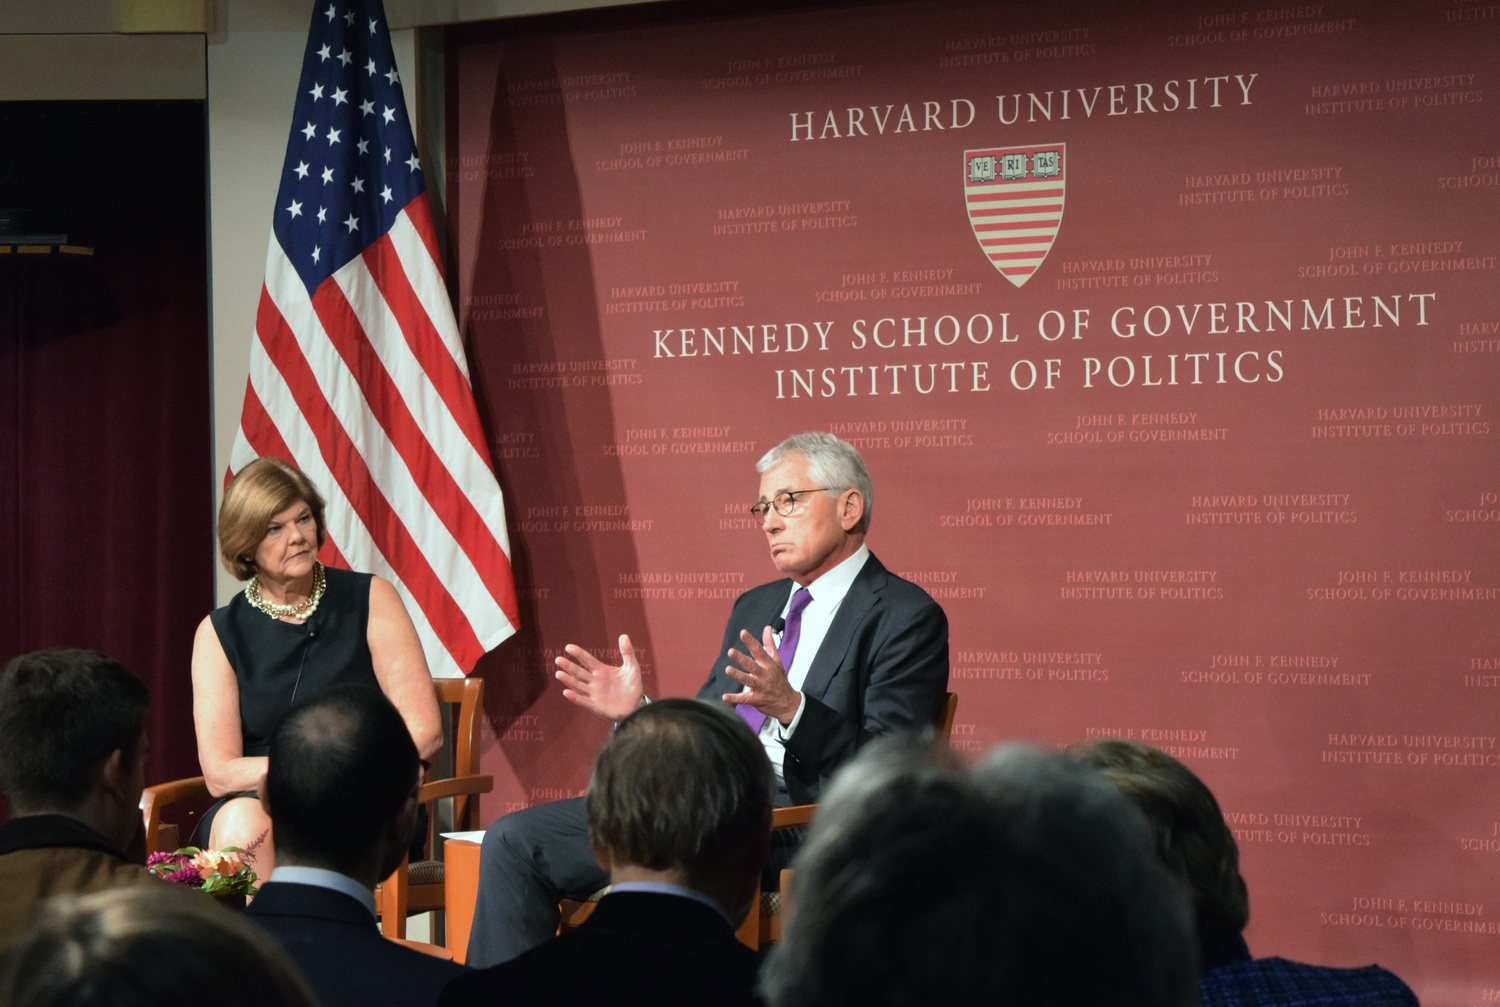 Charles T. Hagel, former US Secretary of Defense, answers questions about his nomination process at the IOP on Tuesday night. Hagel is a visiting fellow at the Institute of Politics.